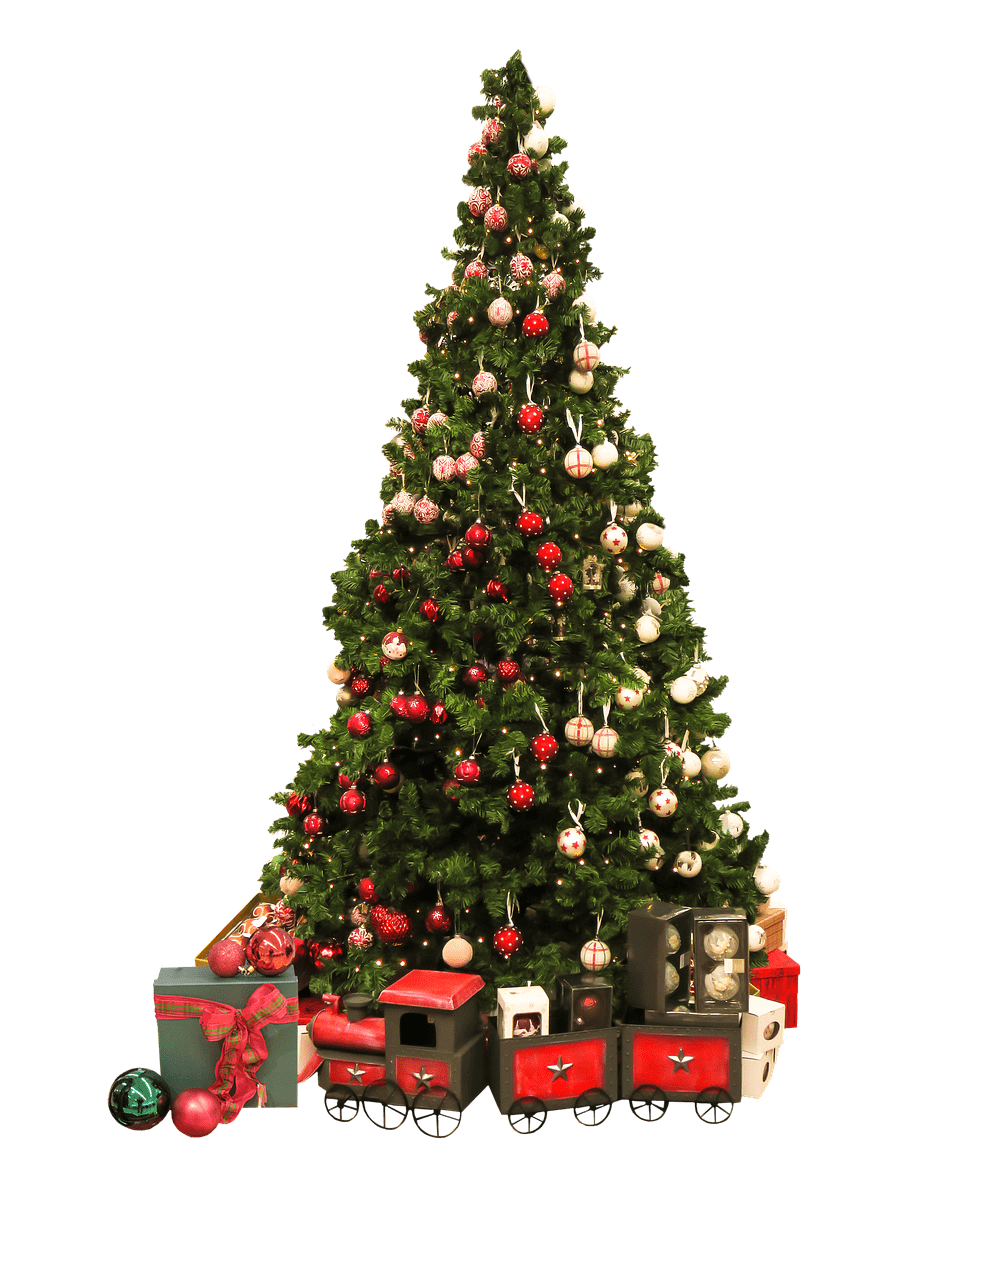 christmas tree and gifts - Christmas Tree Transparent